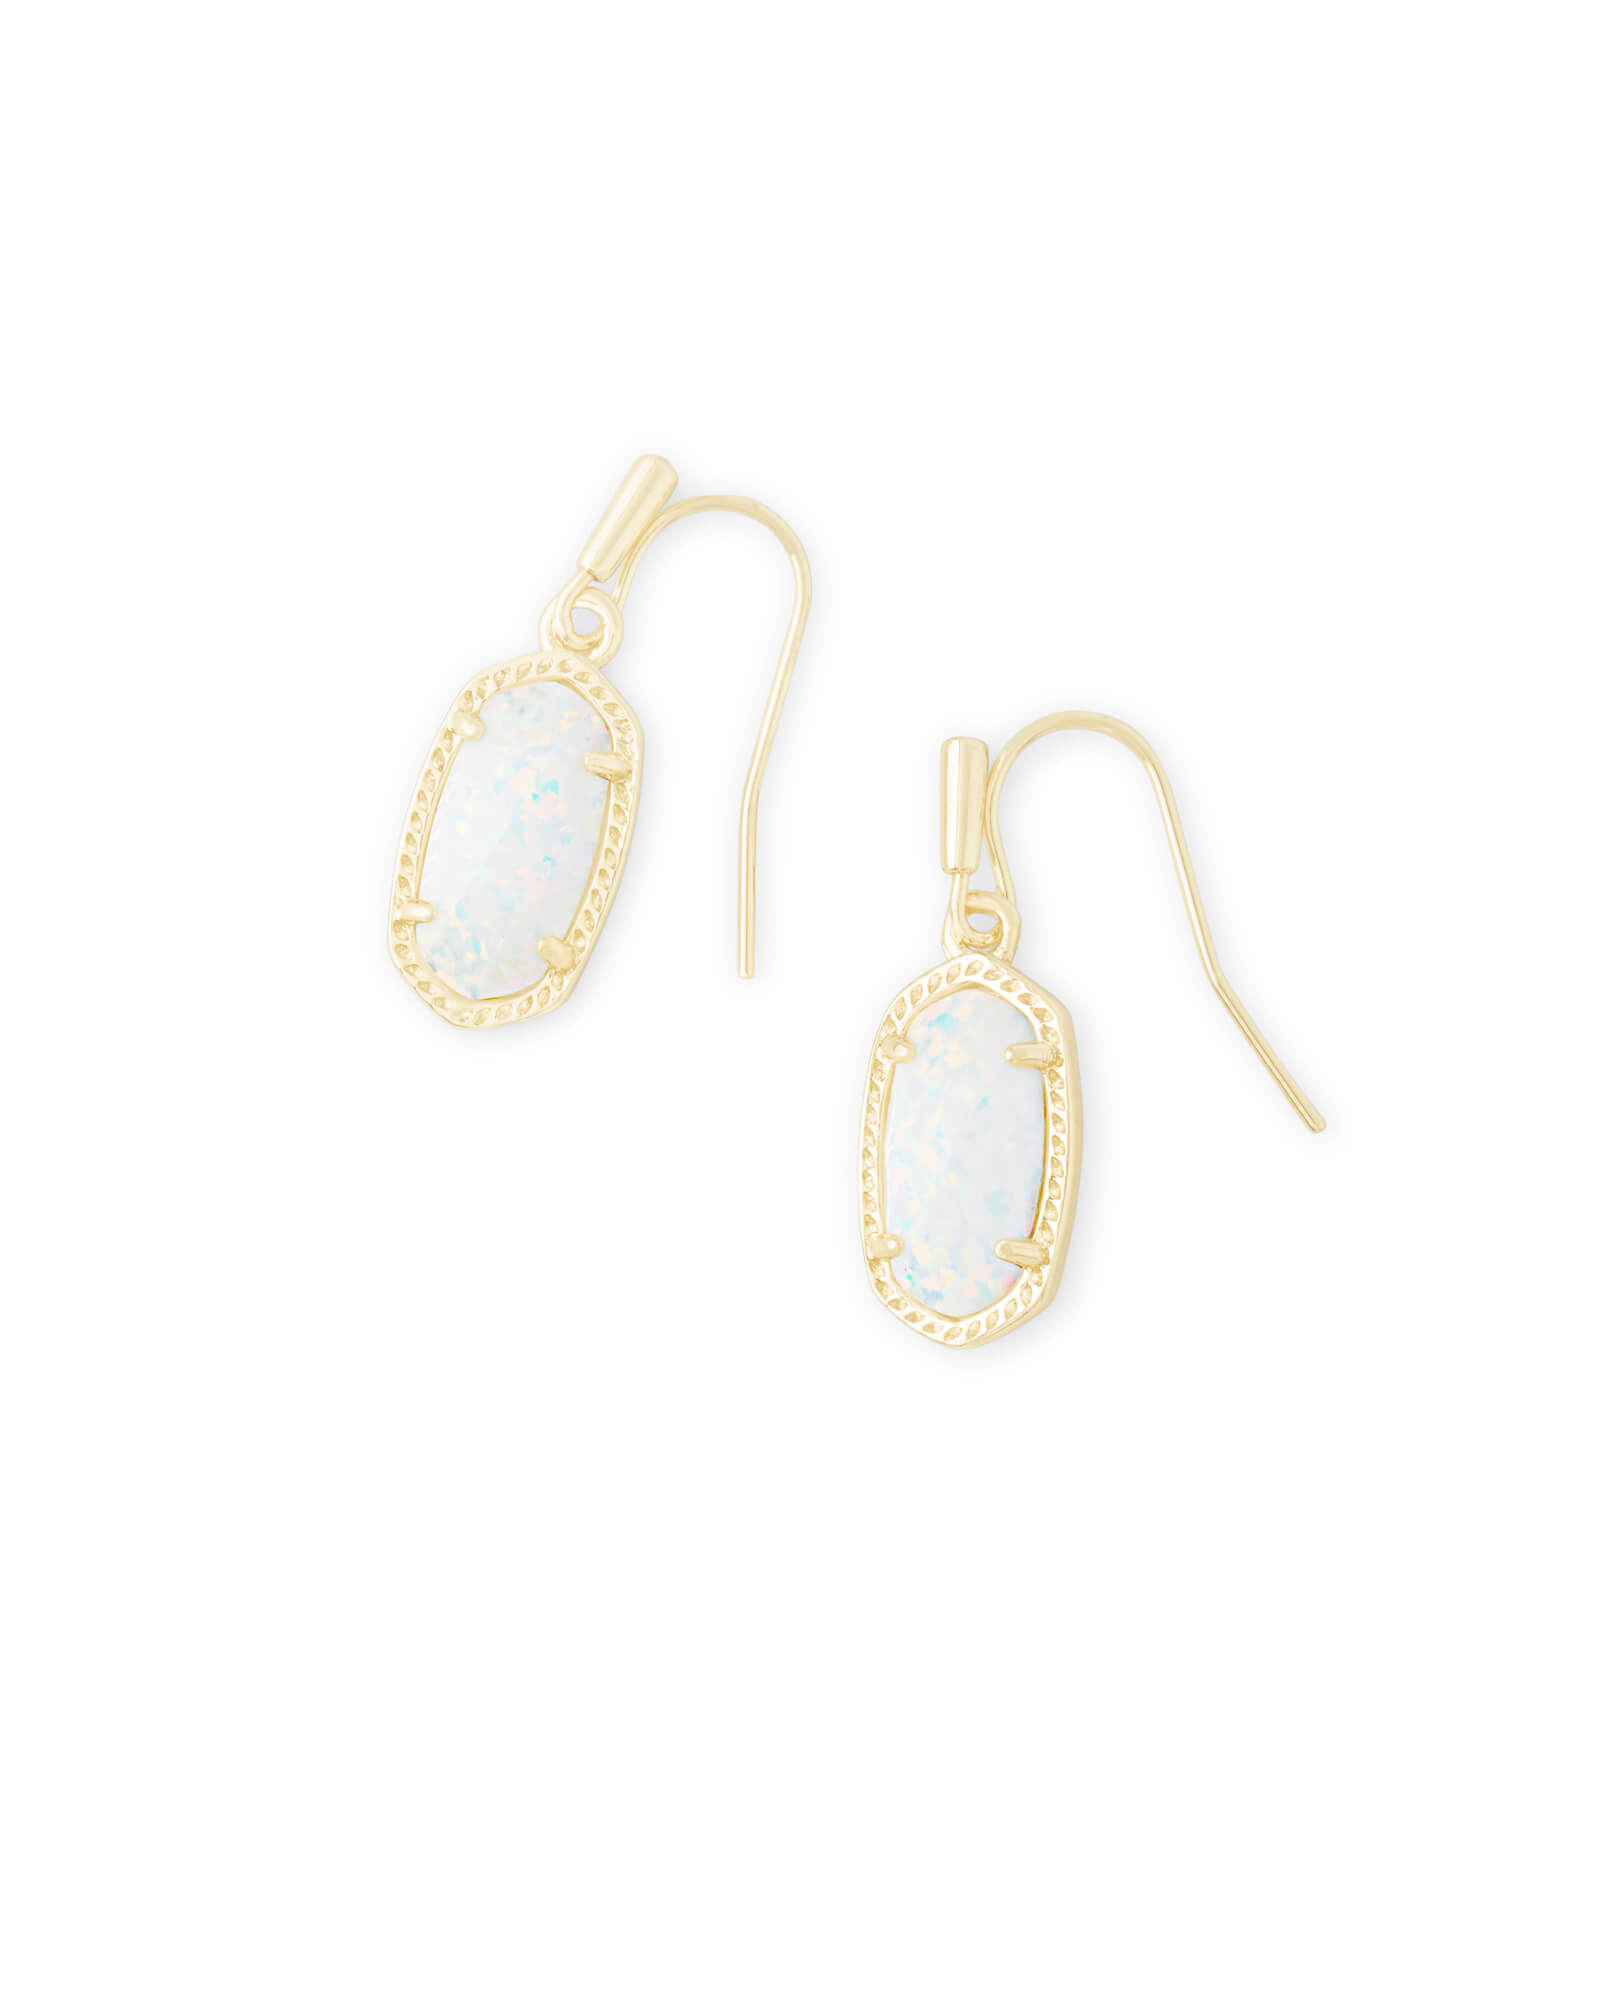 Lee Gold Drop Earrings in White Kyocera Opal